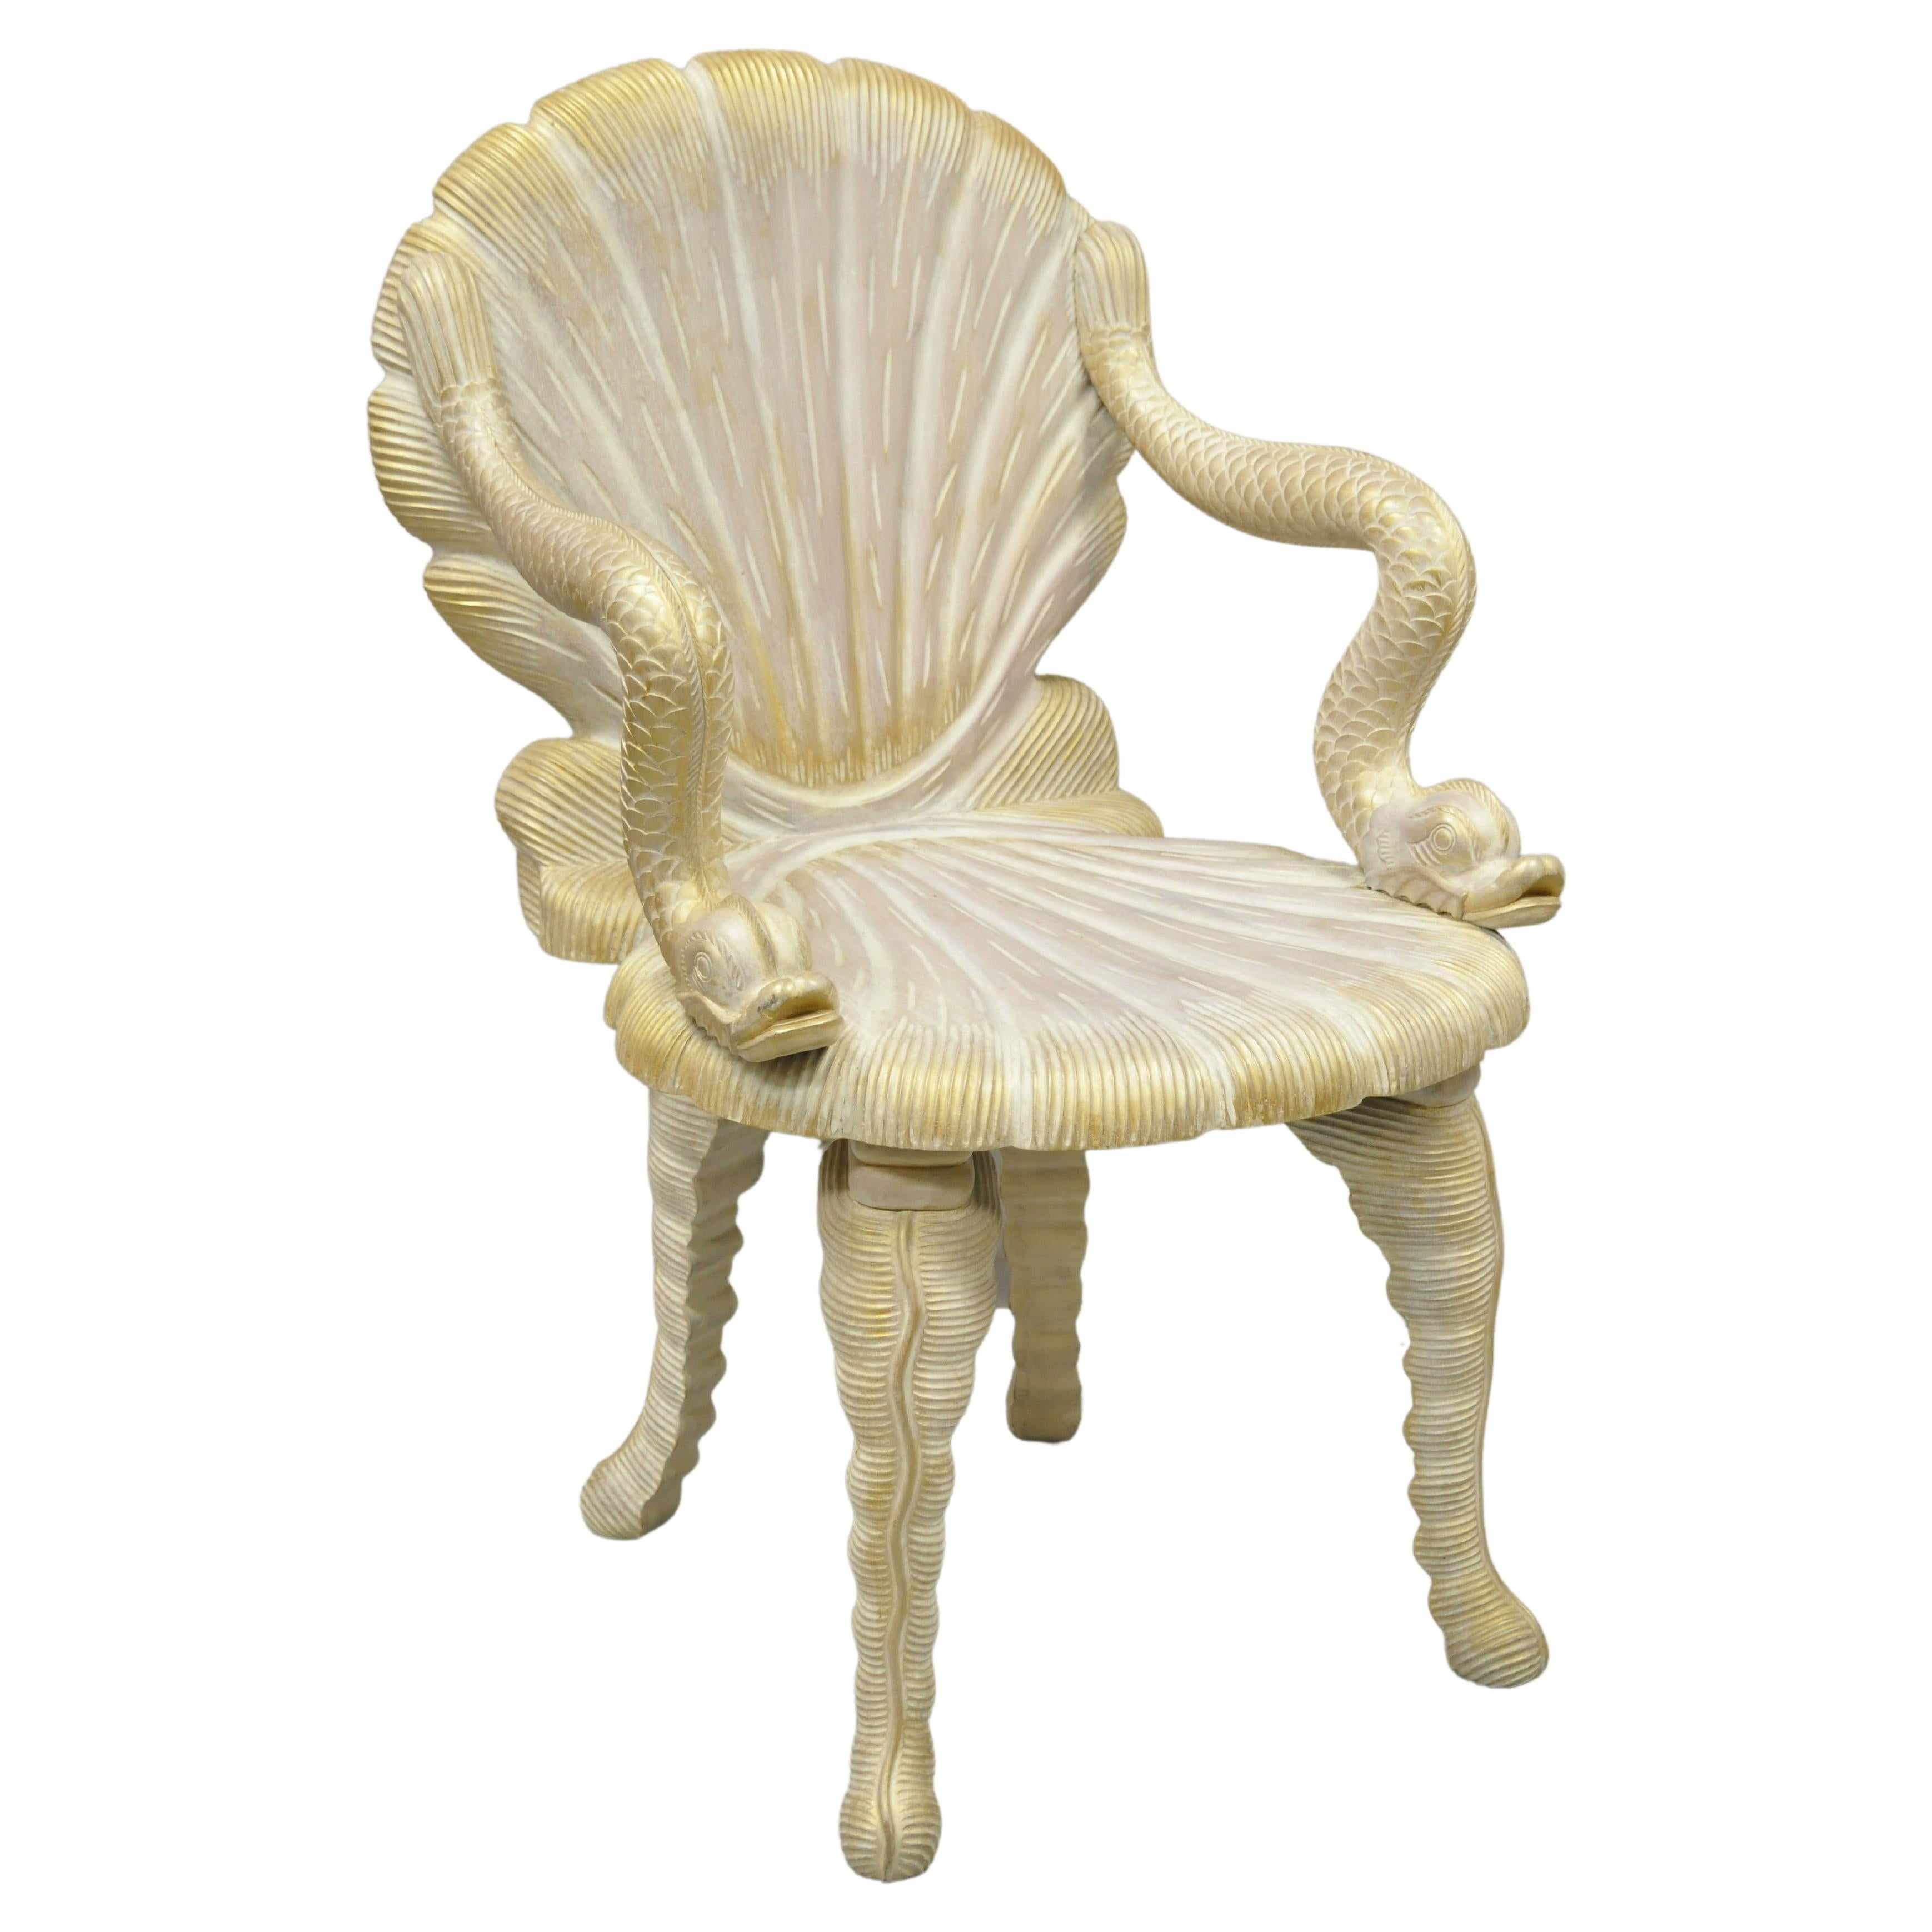 Vintage Italian Carved Wood Grotto Chair Clam Sea Shell and Full Dolphin Arms